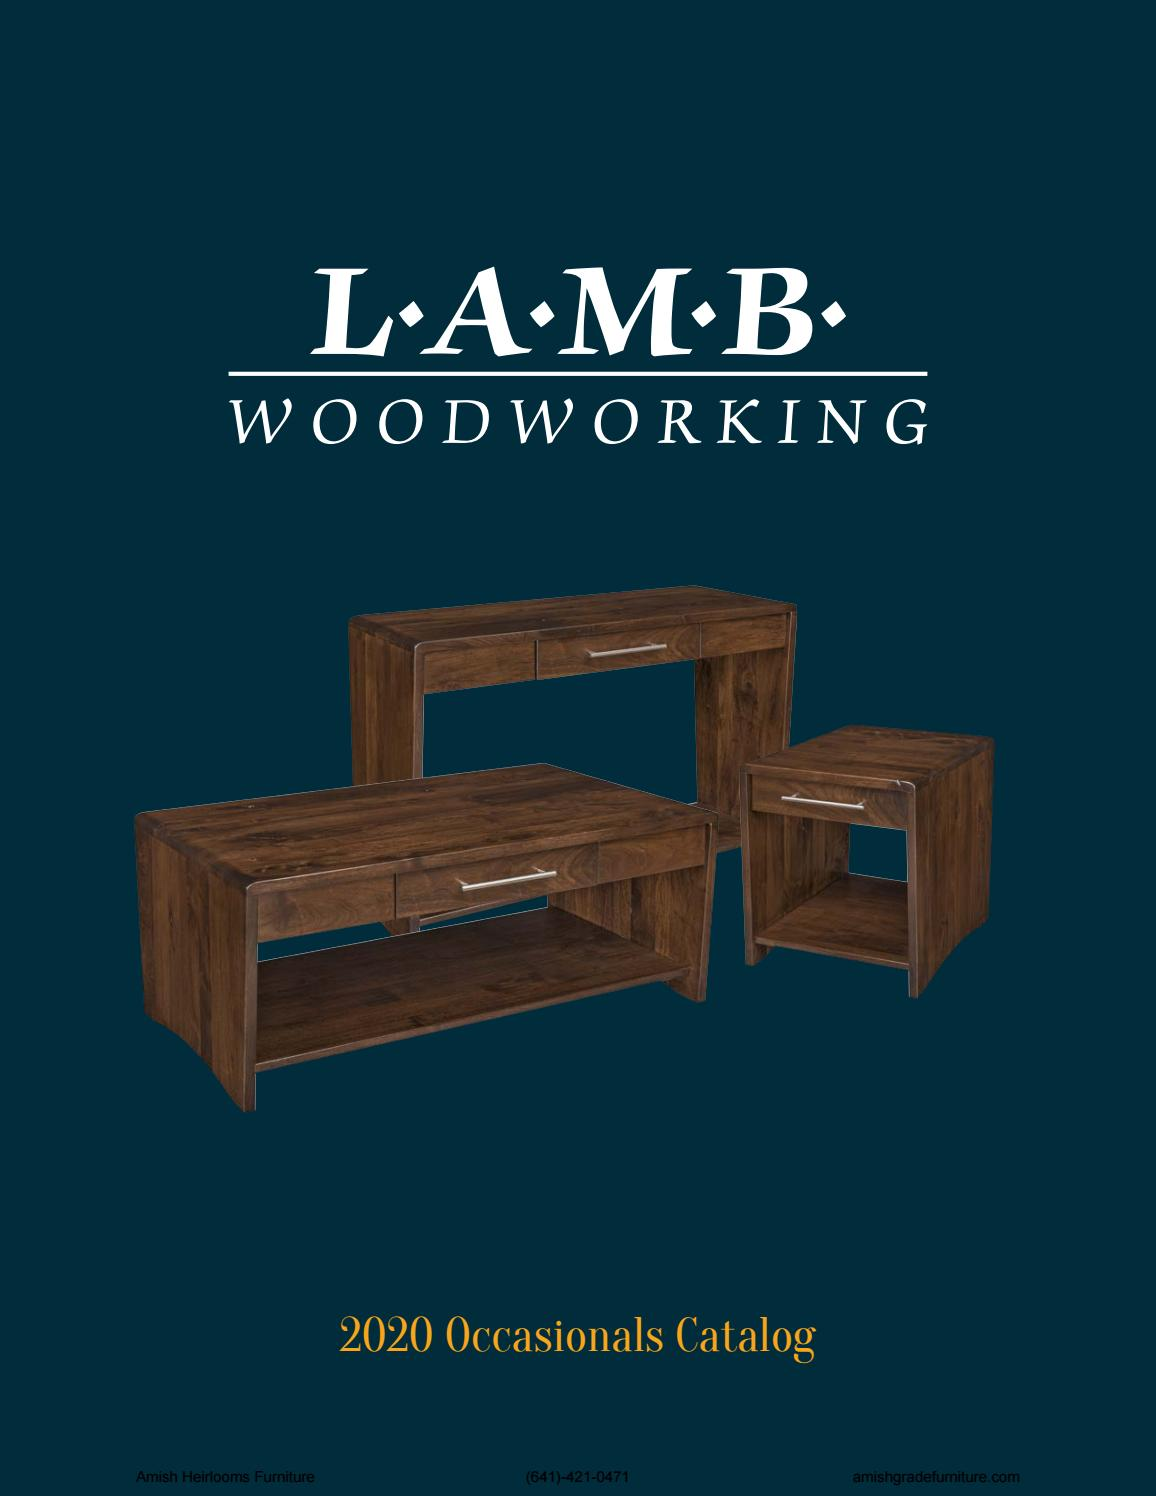 2020 LAMB Woodworking by Amish Heirlooms Furniture